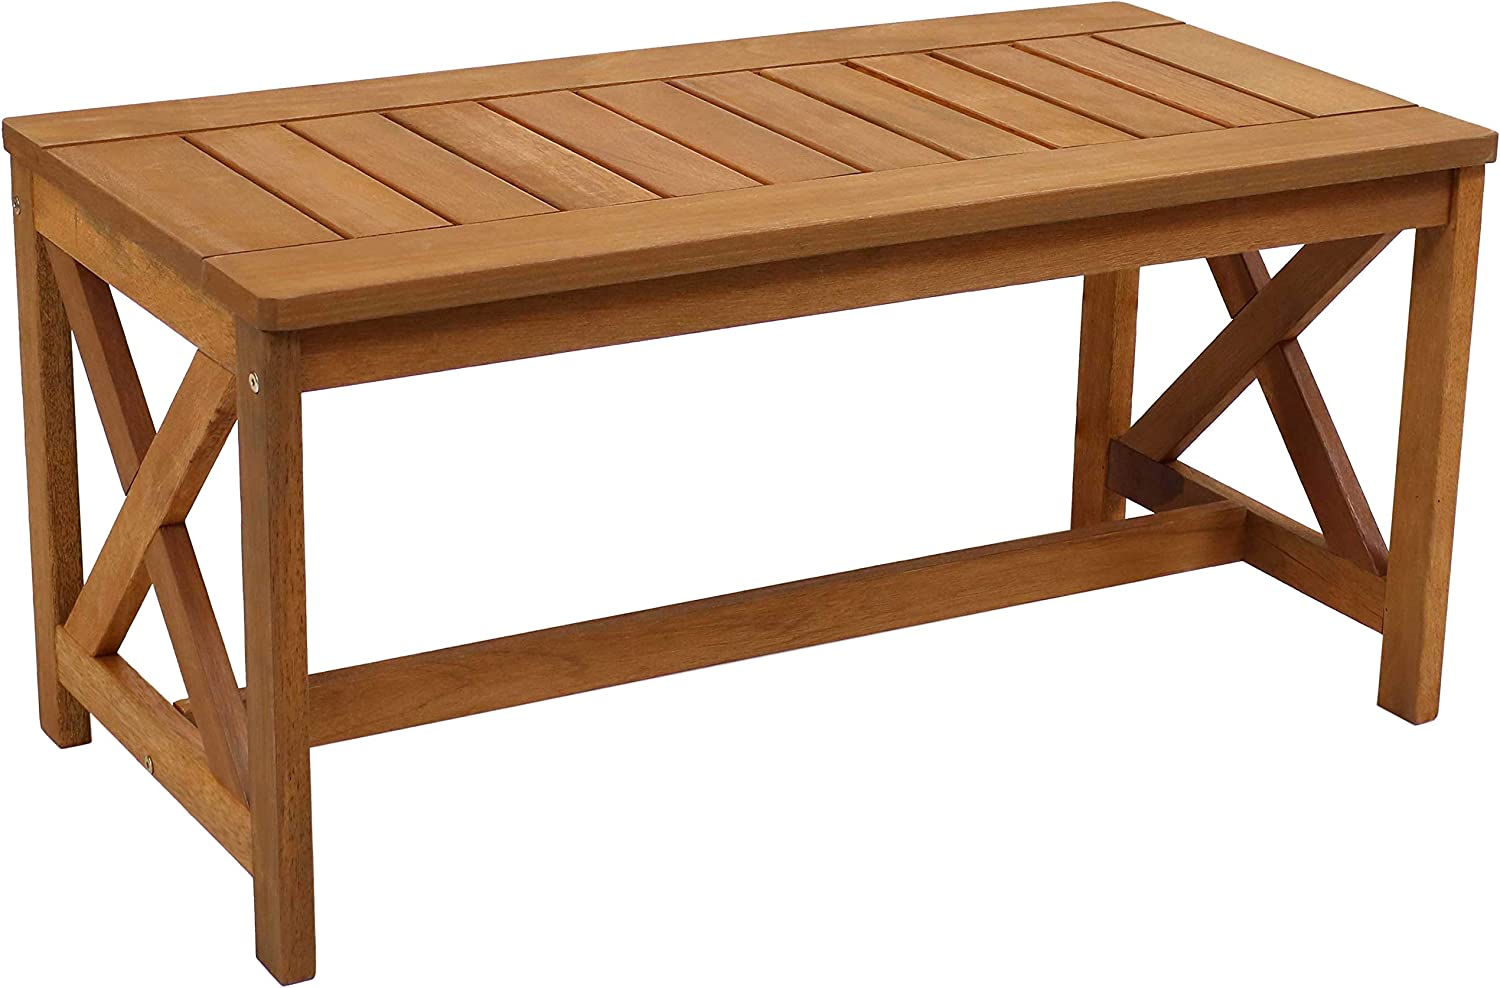 Sunnydaze Meranti Wood Outdoor Patio Coffee Table with Teak Finish - Outside Furniture for Lawn, Garden, Porch, Deck, Balcony, Backyard and Sunroom - Rectangle Table - 35-Inch